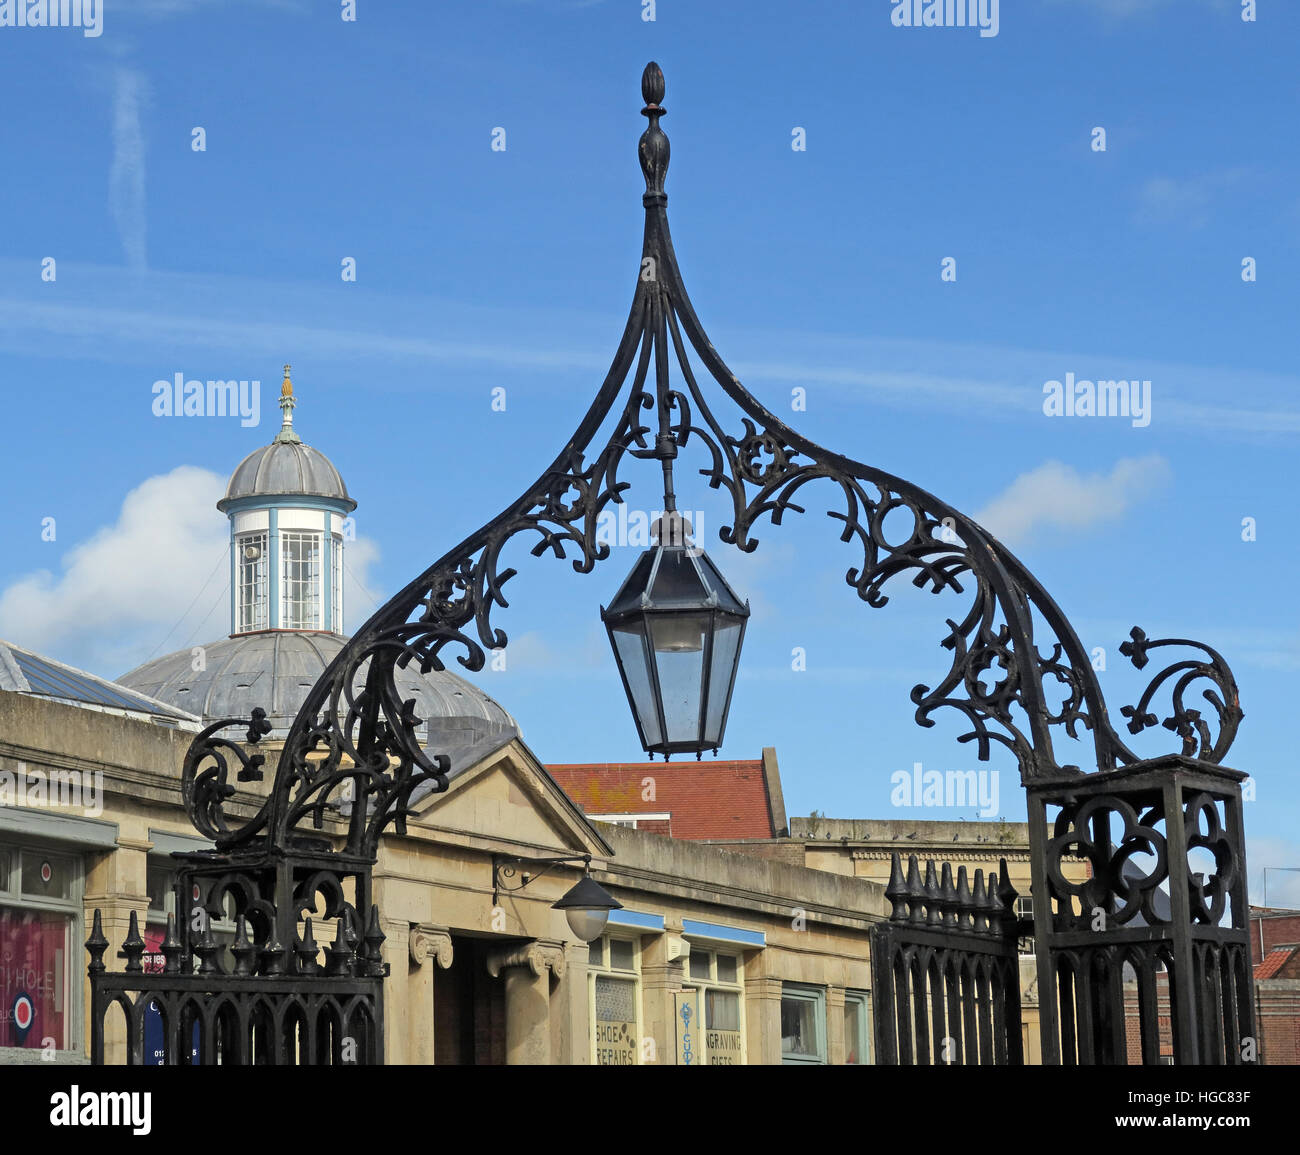 history,wrought,iron,light,ornate,SDC,Sedgemoor,District,Council,church,christian,church,of,Engalnd,St,mary,Marys,Church,Somerset,wrought Iron,church of England,GoTonySmith,@HotpixUK,Tony,Smith,UK,GB,Great,Britain,United,Kingdom,English,British,England,problem,with,problem with,issue with,Buy Pictures of,Buy Images Of,Images of,Stock Images,Tony Smith,United Kingdom,Great Britain,British Isles